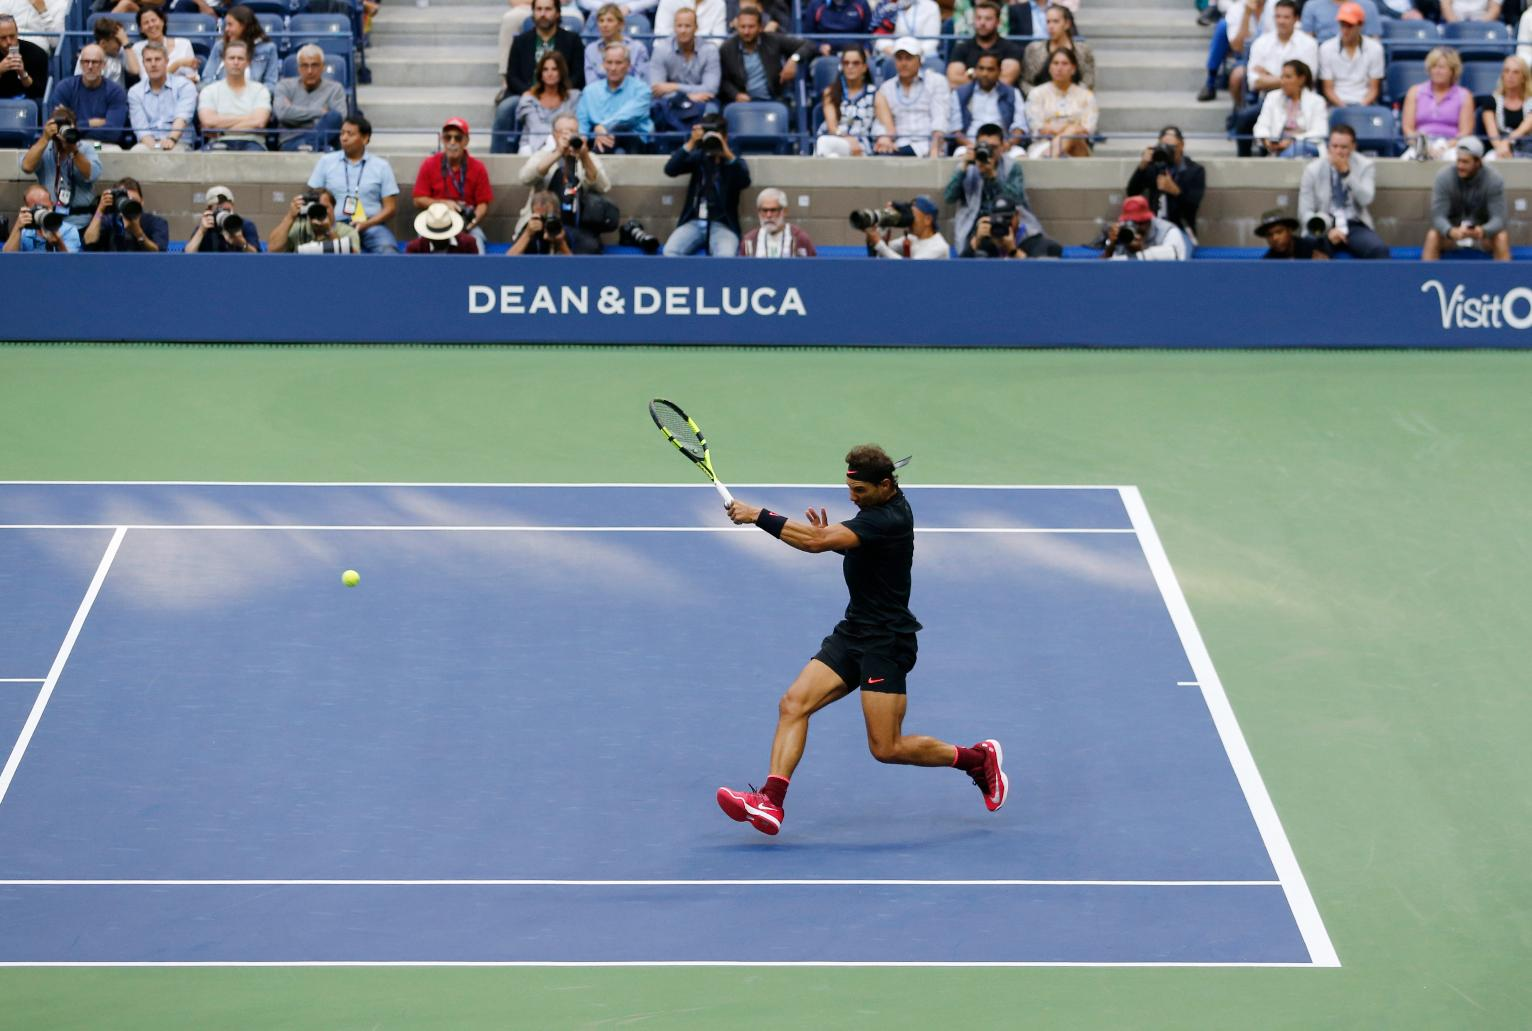 a history of the us open tennis championship The united states tennis association is handing out a total of $504 million in prize money at the 2017 us open americans sloane stephens and madison keys faced off in the us open final on saturday stephens beat out keys, winning $37 million, the most money awarded in tennis history in spite of.